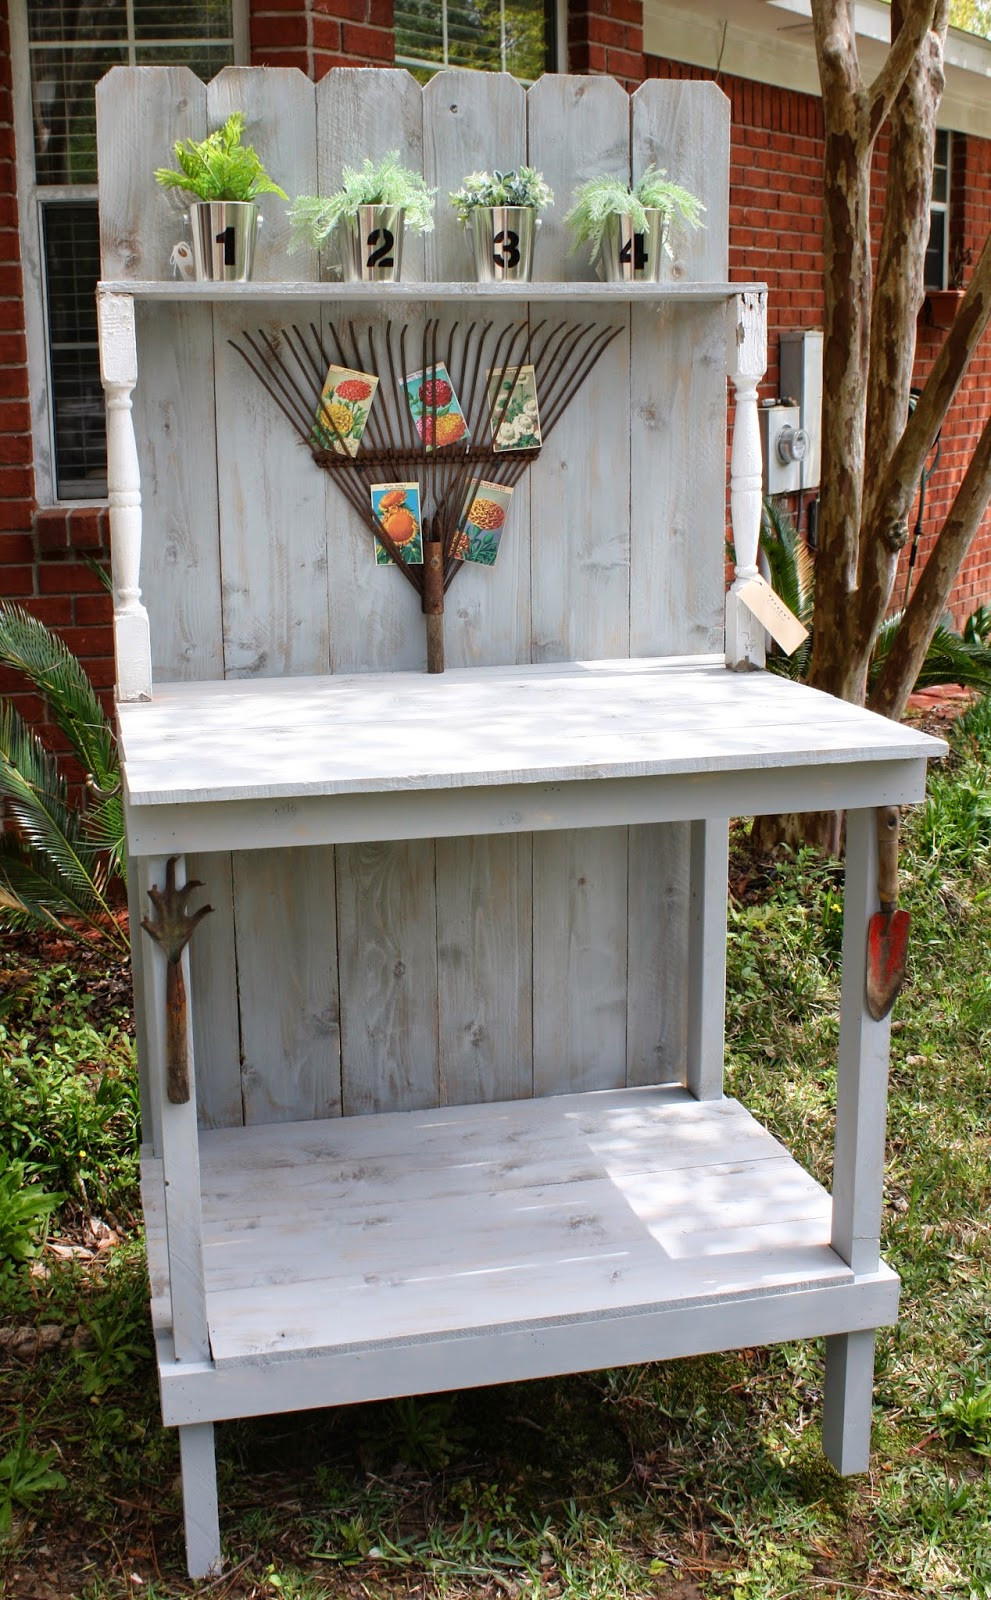 Best ideas about DIY Potting Benches . Save or Pin Coastal Charm DIY Potting Bench Now.